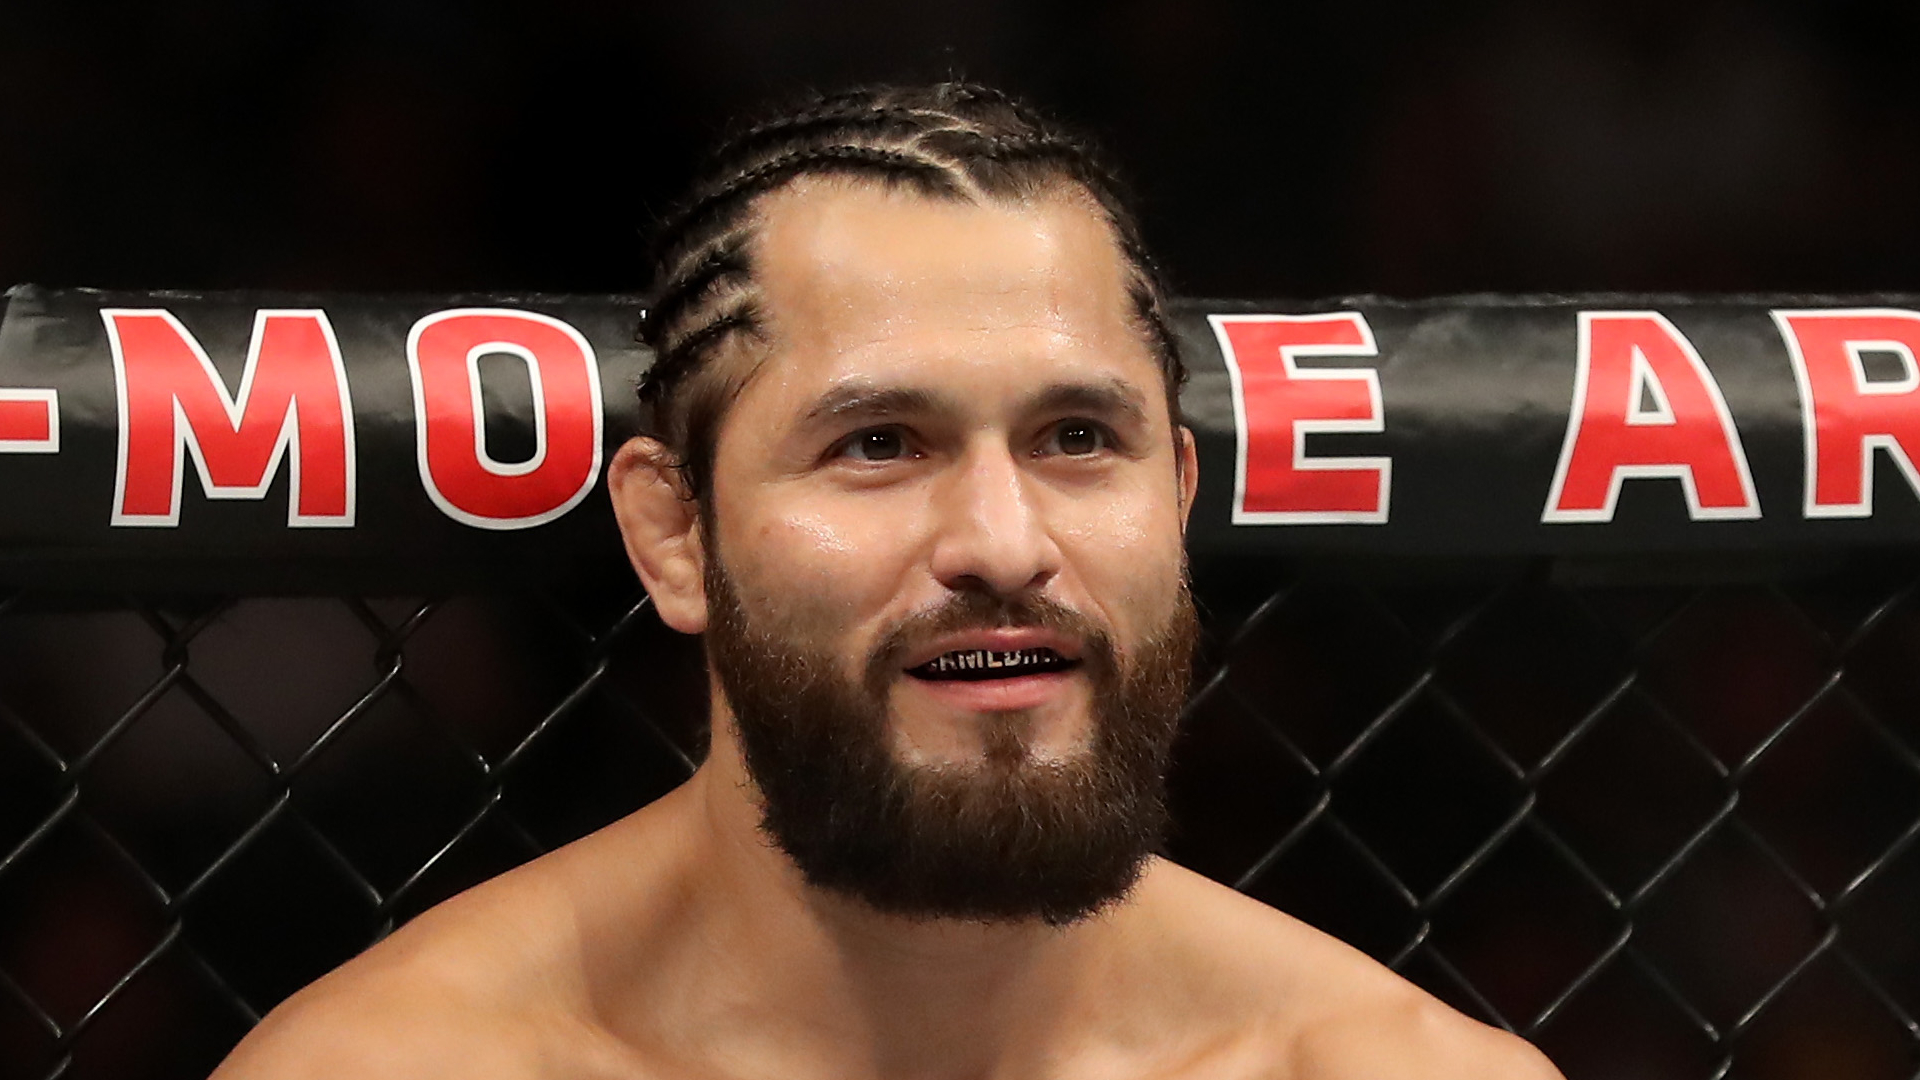 The 36-year old son of father (?) and mother(?) Jorge Masvidal in 2020 photo. Jorge Masvidal earned a  million dollar salary - leaving the net worth at  million in 2020